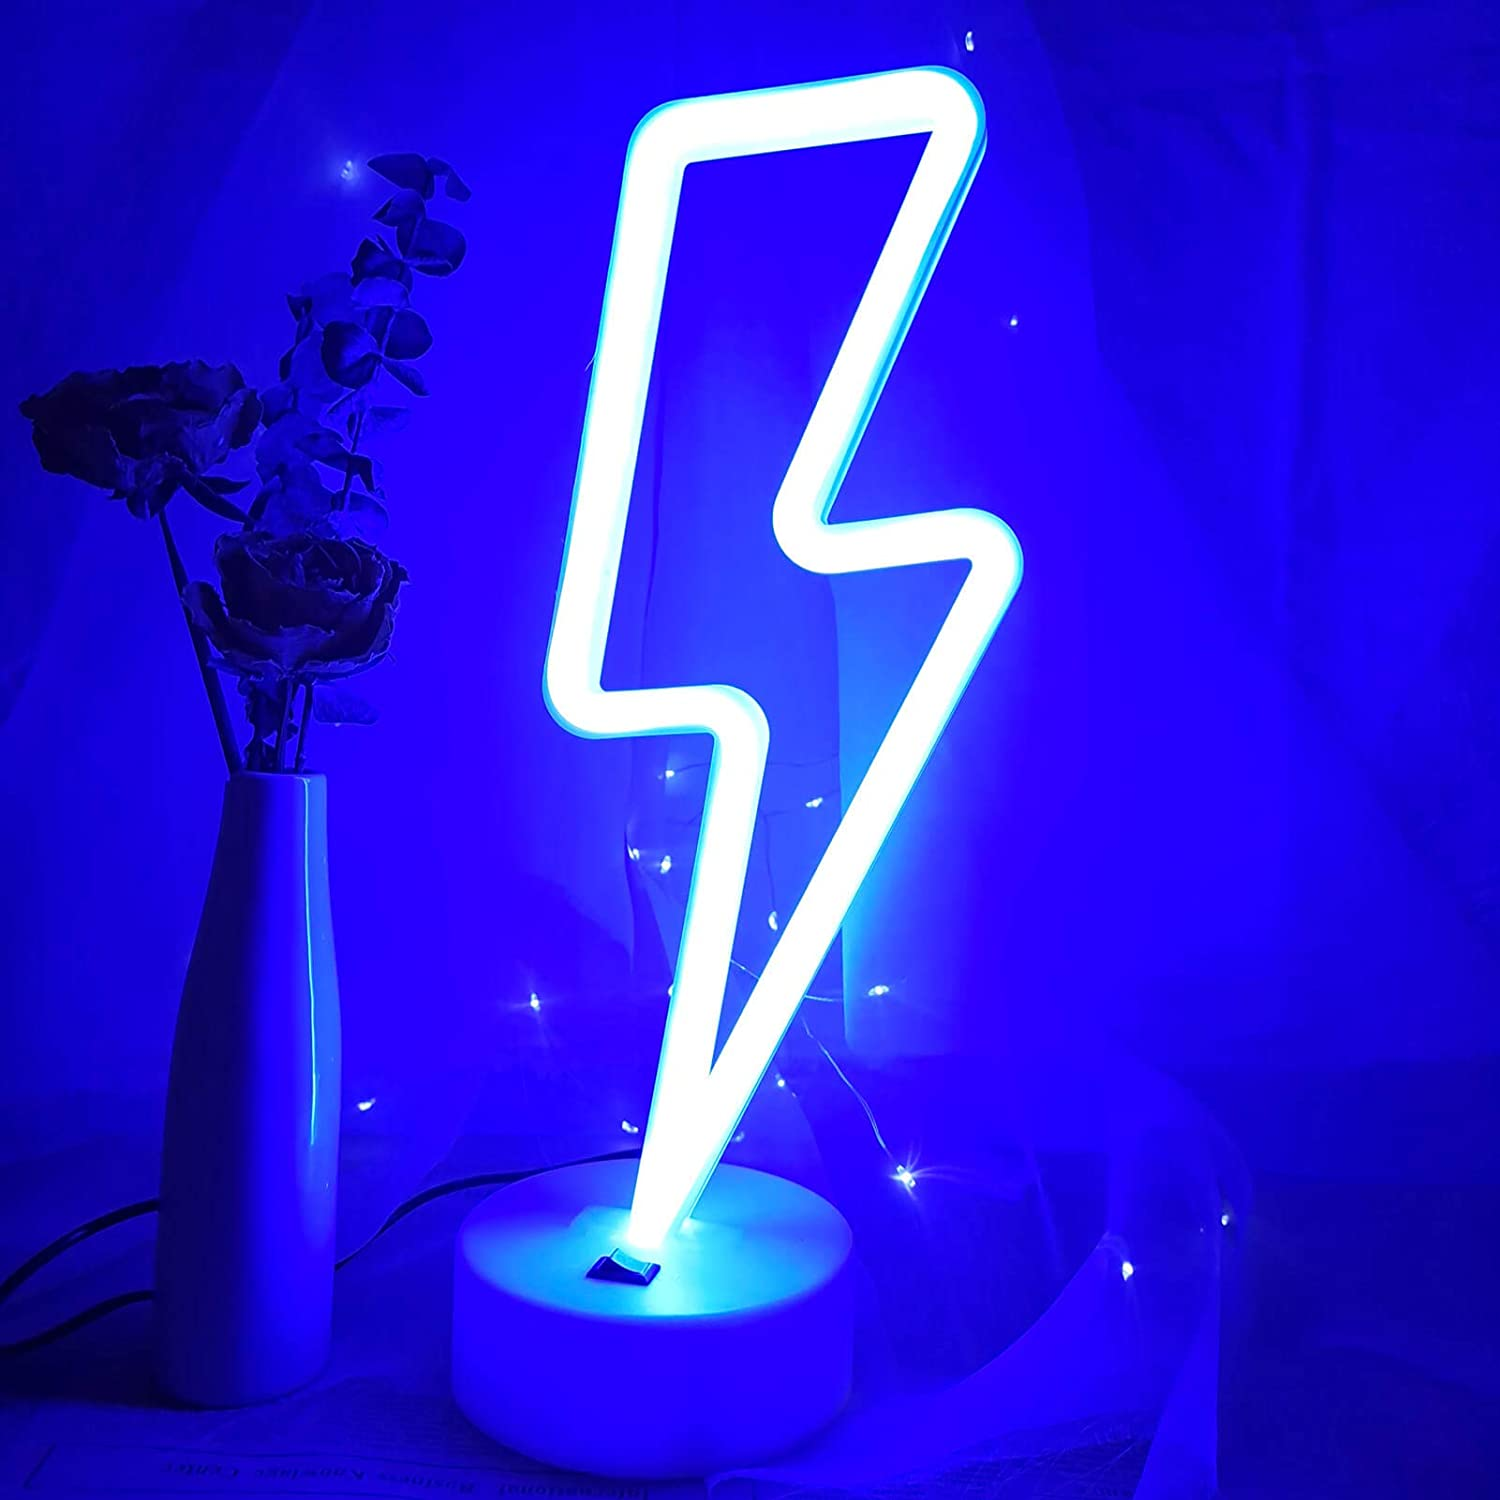 VIFULIN Blue Lighting LED Lights for Bedroom Neon Signs for Wall Decor Room Decor for Teen Girls Gifts for Teenager Boys USB/Battery Cool Gadgets Cool Things Gaming Accessories with Holder(Blue)